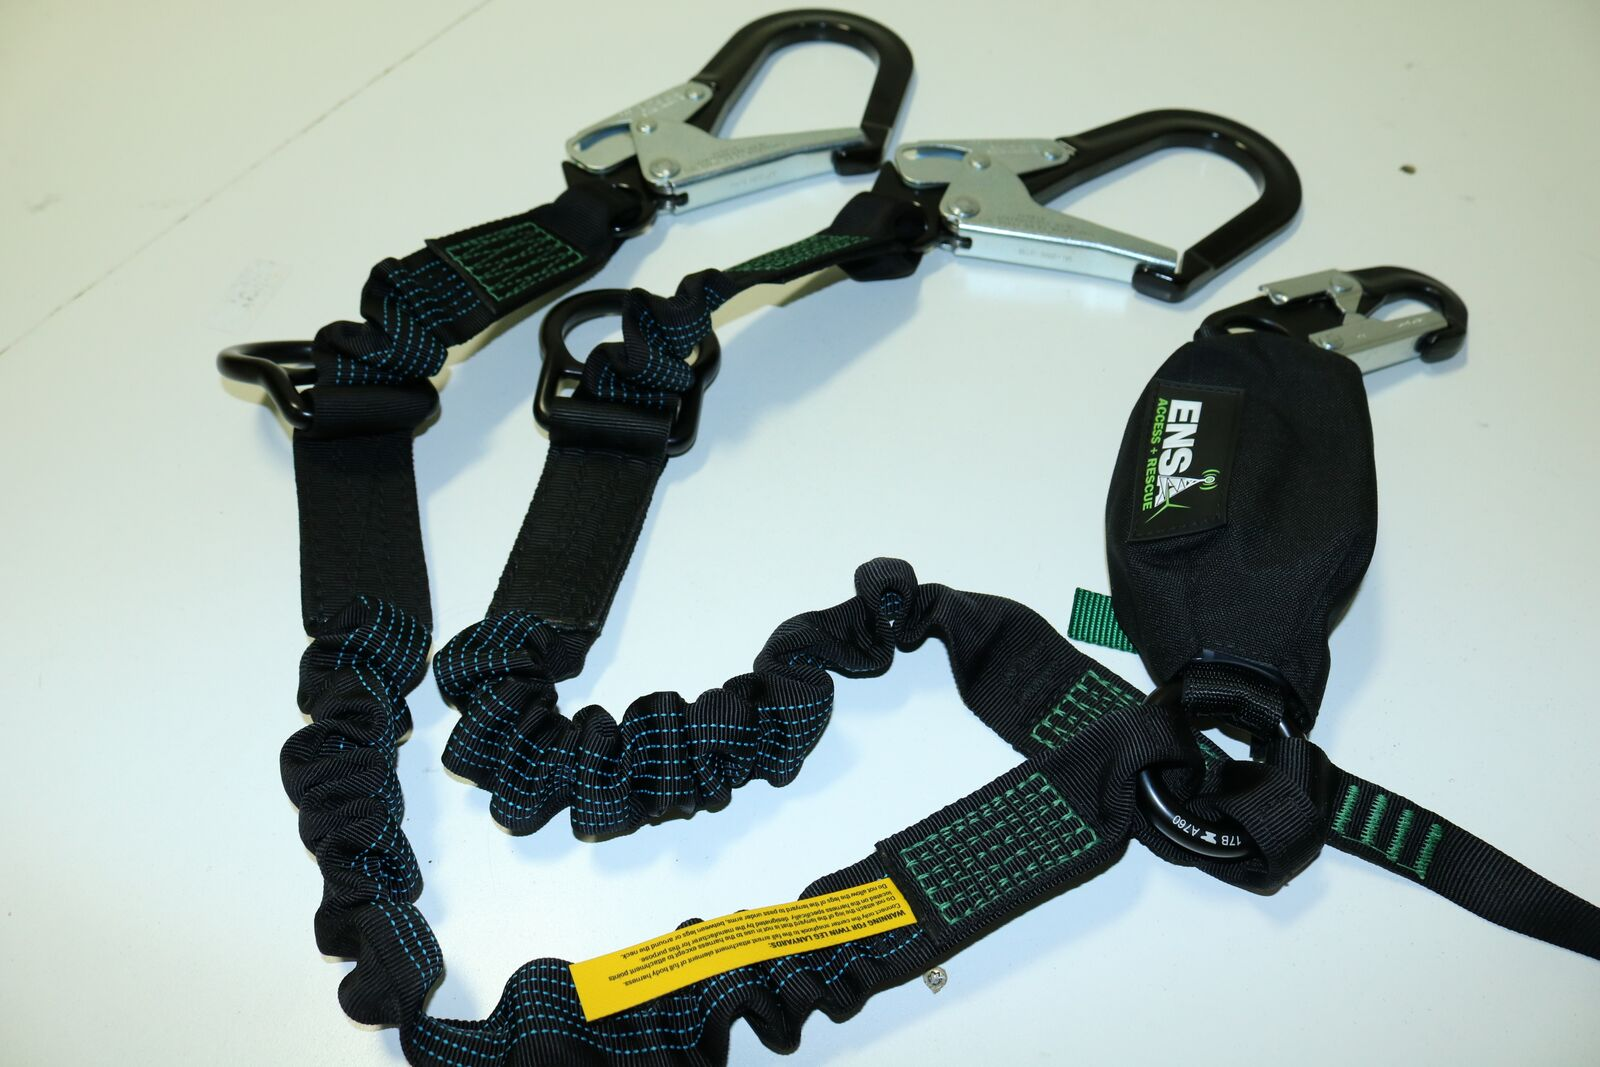 ENSA ENSA-APEVINE-874S APE Vine PEA Fall Arrest Lanyard, Light Weight , Dyneema Core Fiber Line, Steel Form Hook, Black